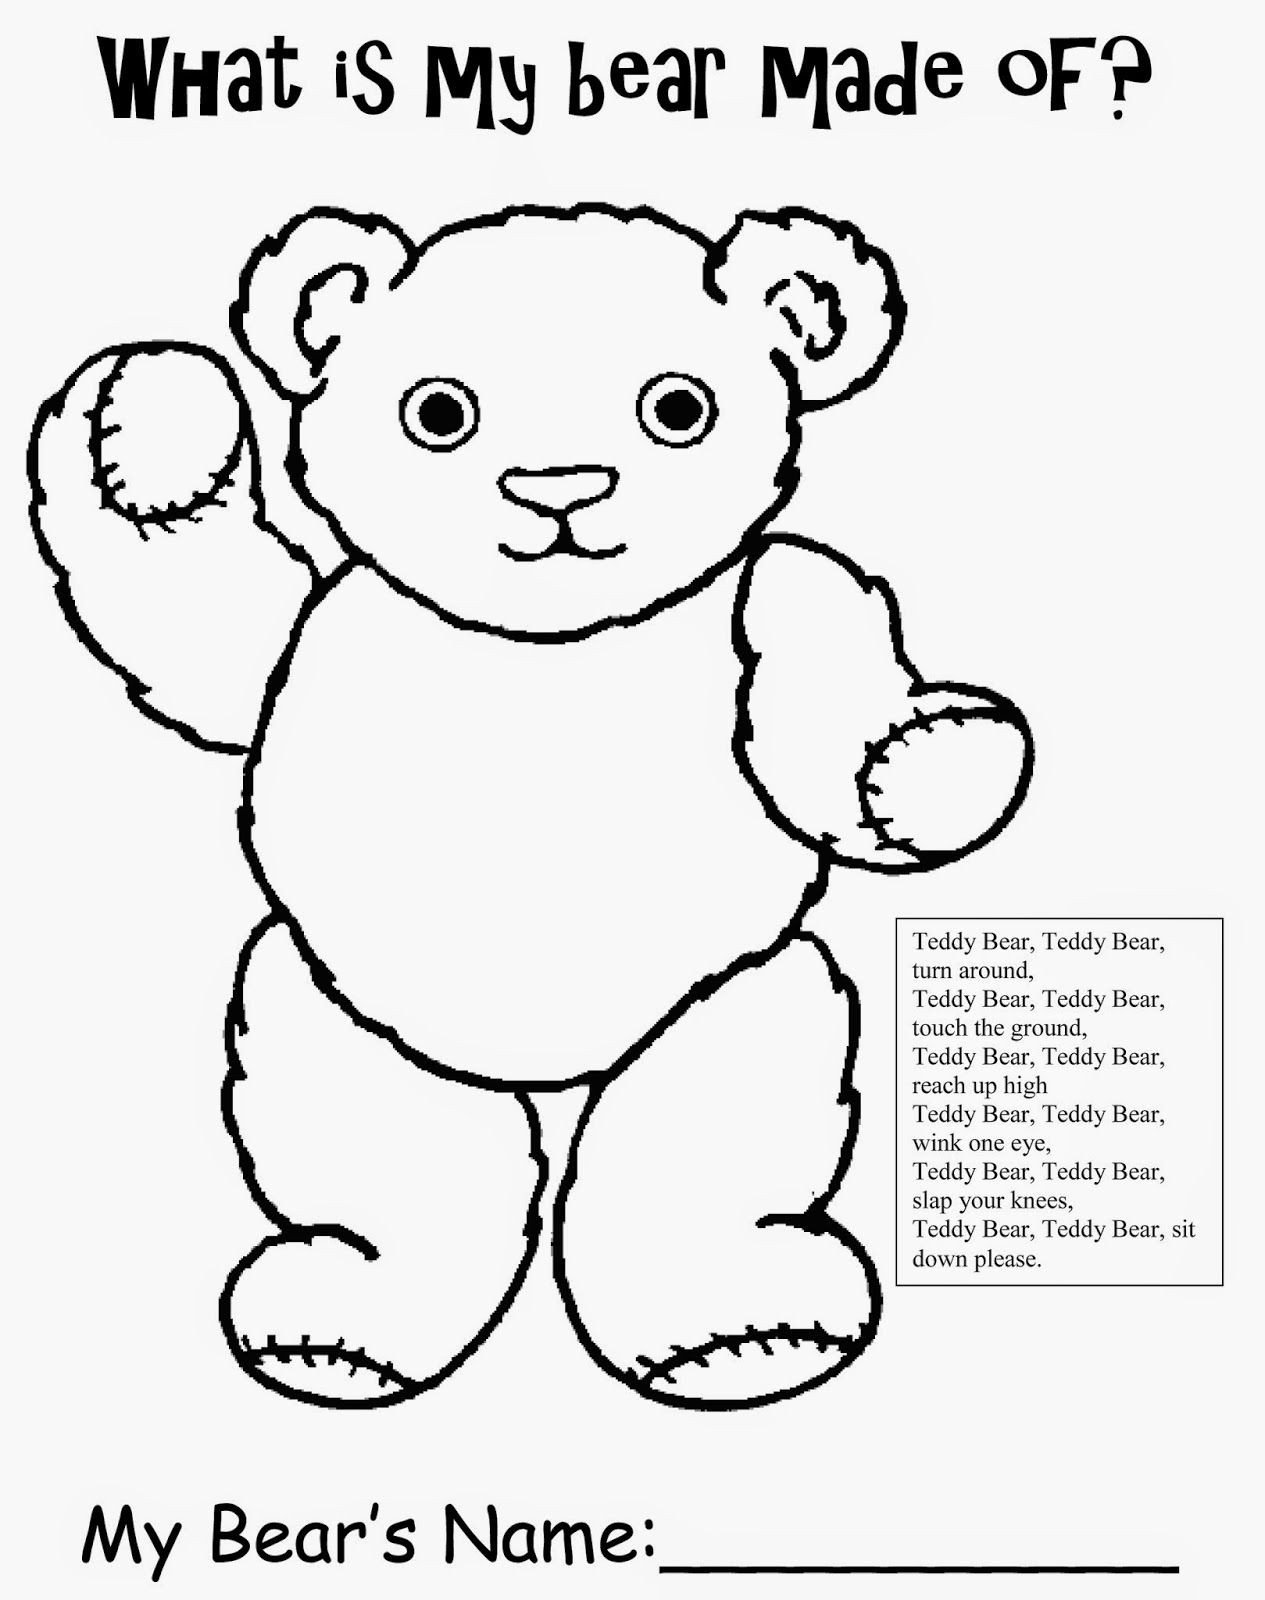 Polar Bear Worksheets Kindergarten Bear Printable Homework Sheets for Preschool Teddy Bear Free